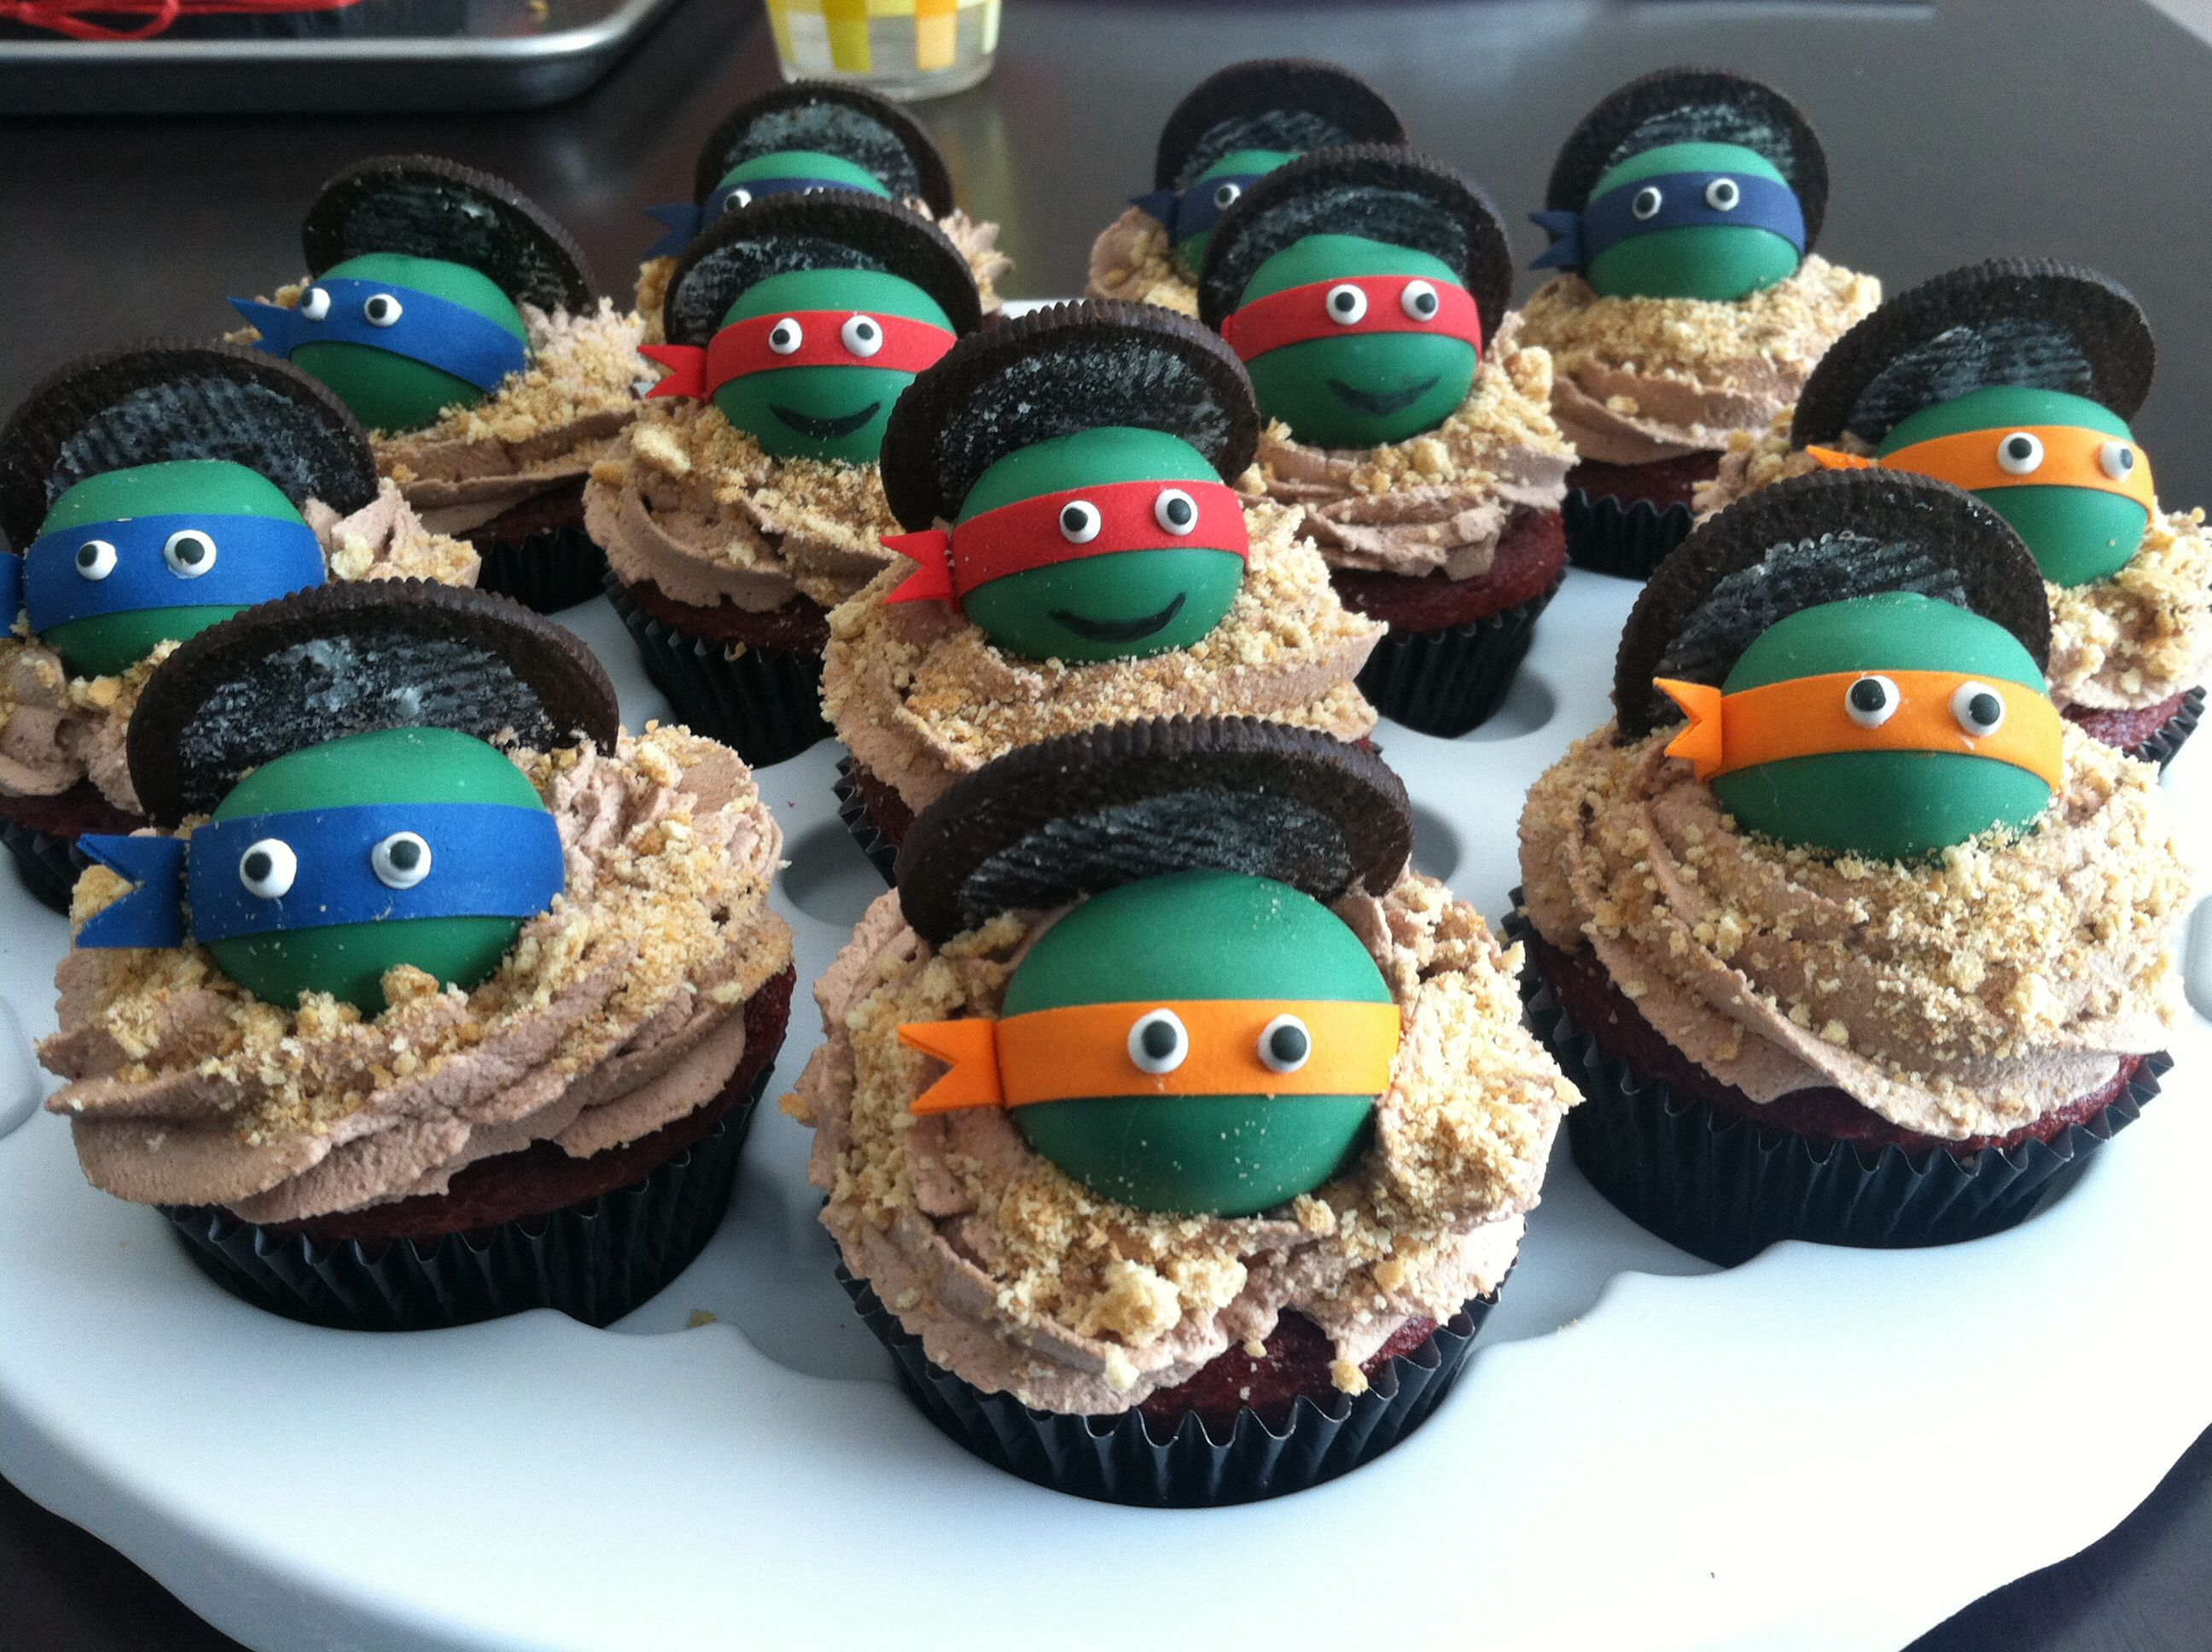 Teenage Mutant Ninja Turtle cupcakes with small cake pop balls as